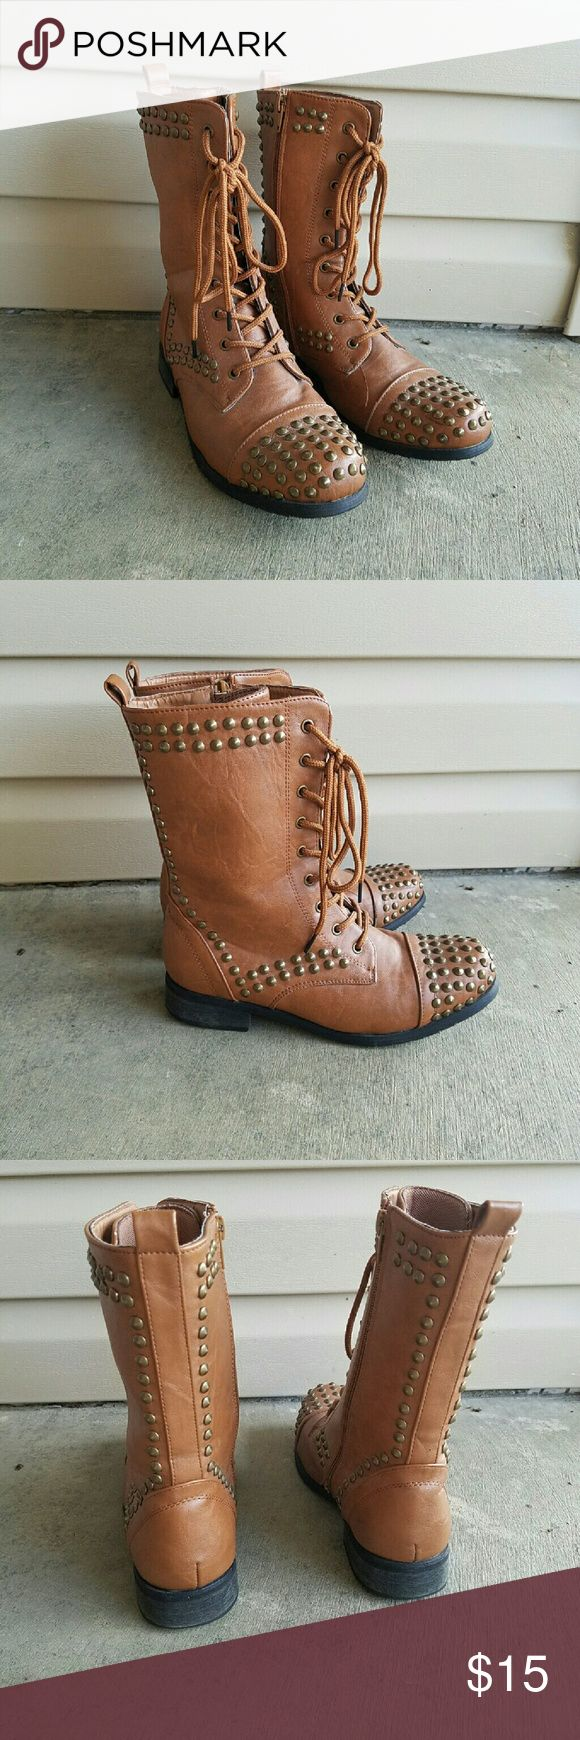 Studded Combat boots Lightly worn studded combat boots for the fall or winter season! Size 7/8: up for any offers Rue 21 Shoes Combat & Moto Boots